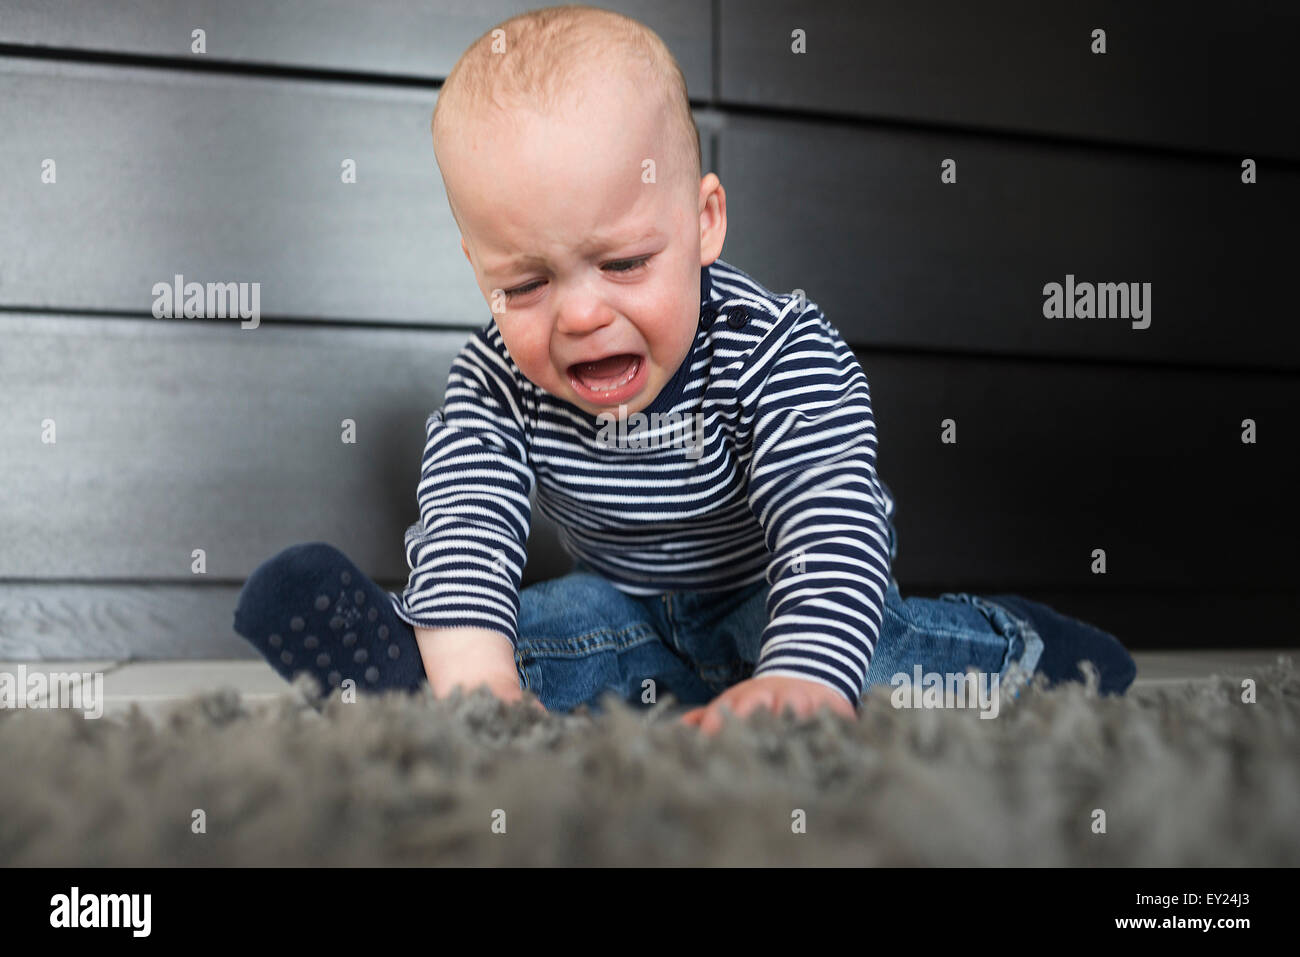 crying toddler on floor stockfotos crying toddler on floor bilder alamy. Black Bedroom Furniture Sets. Home Design Ideas